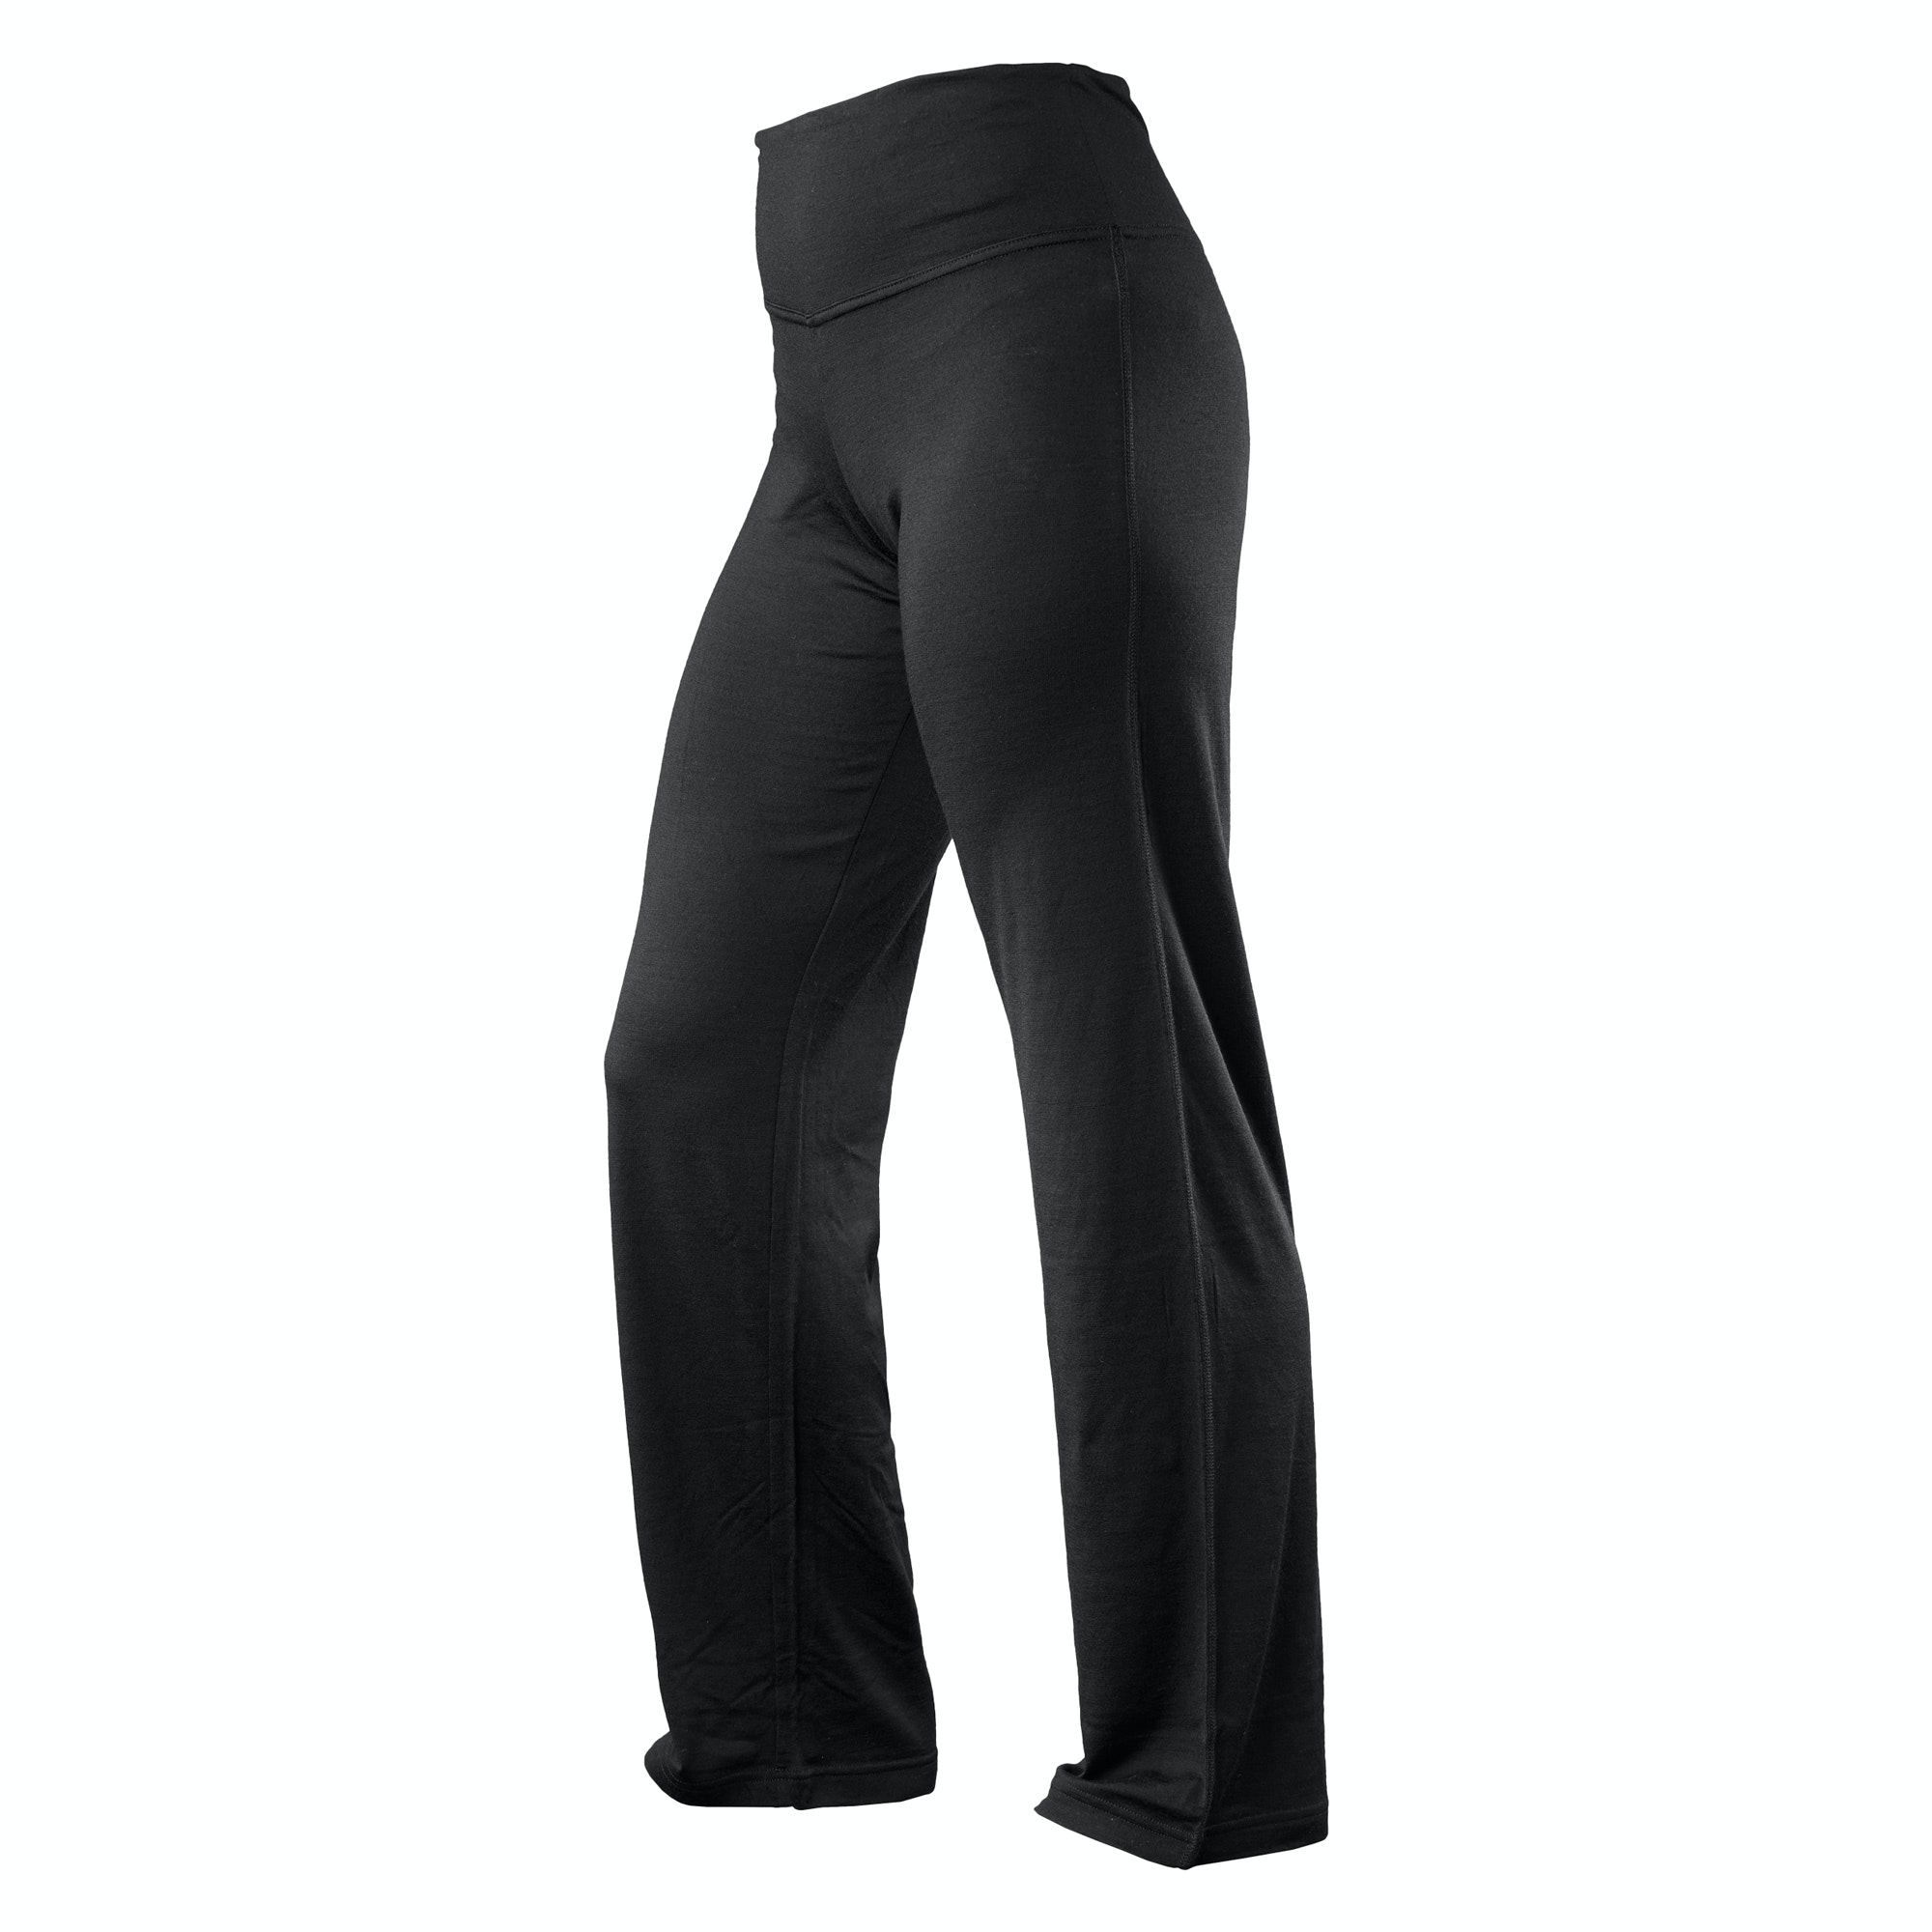 Women's Wool Pants HF Elegant ladies will love the 7/8th cut of these stretch grain de poudre wool pants, to be dressed up with pumps or down with sneakers.